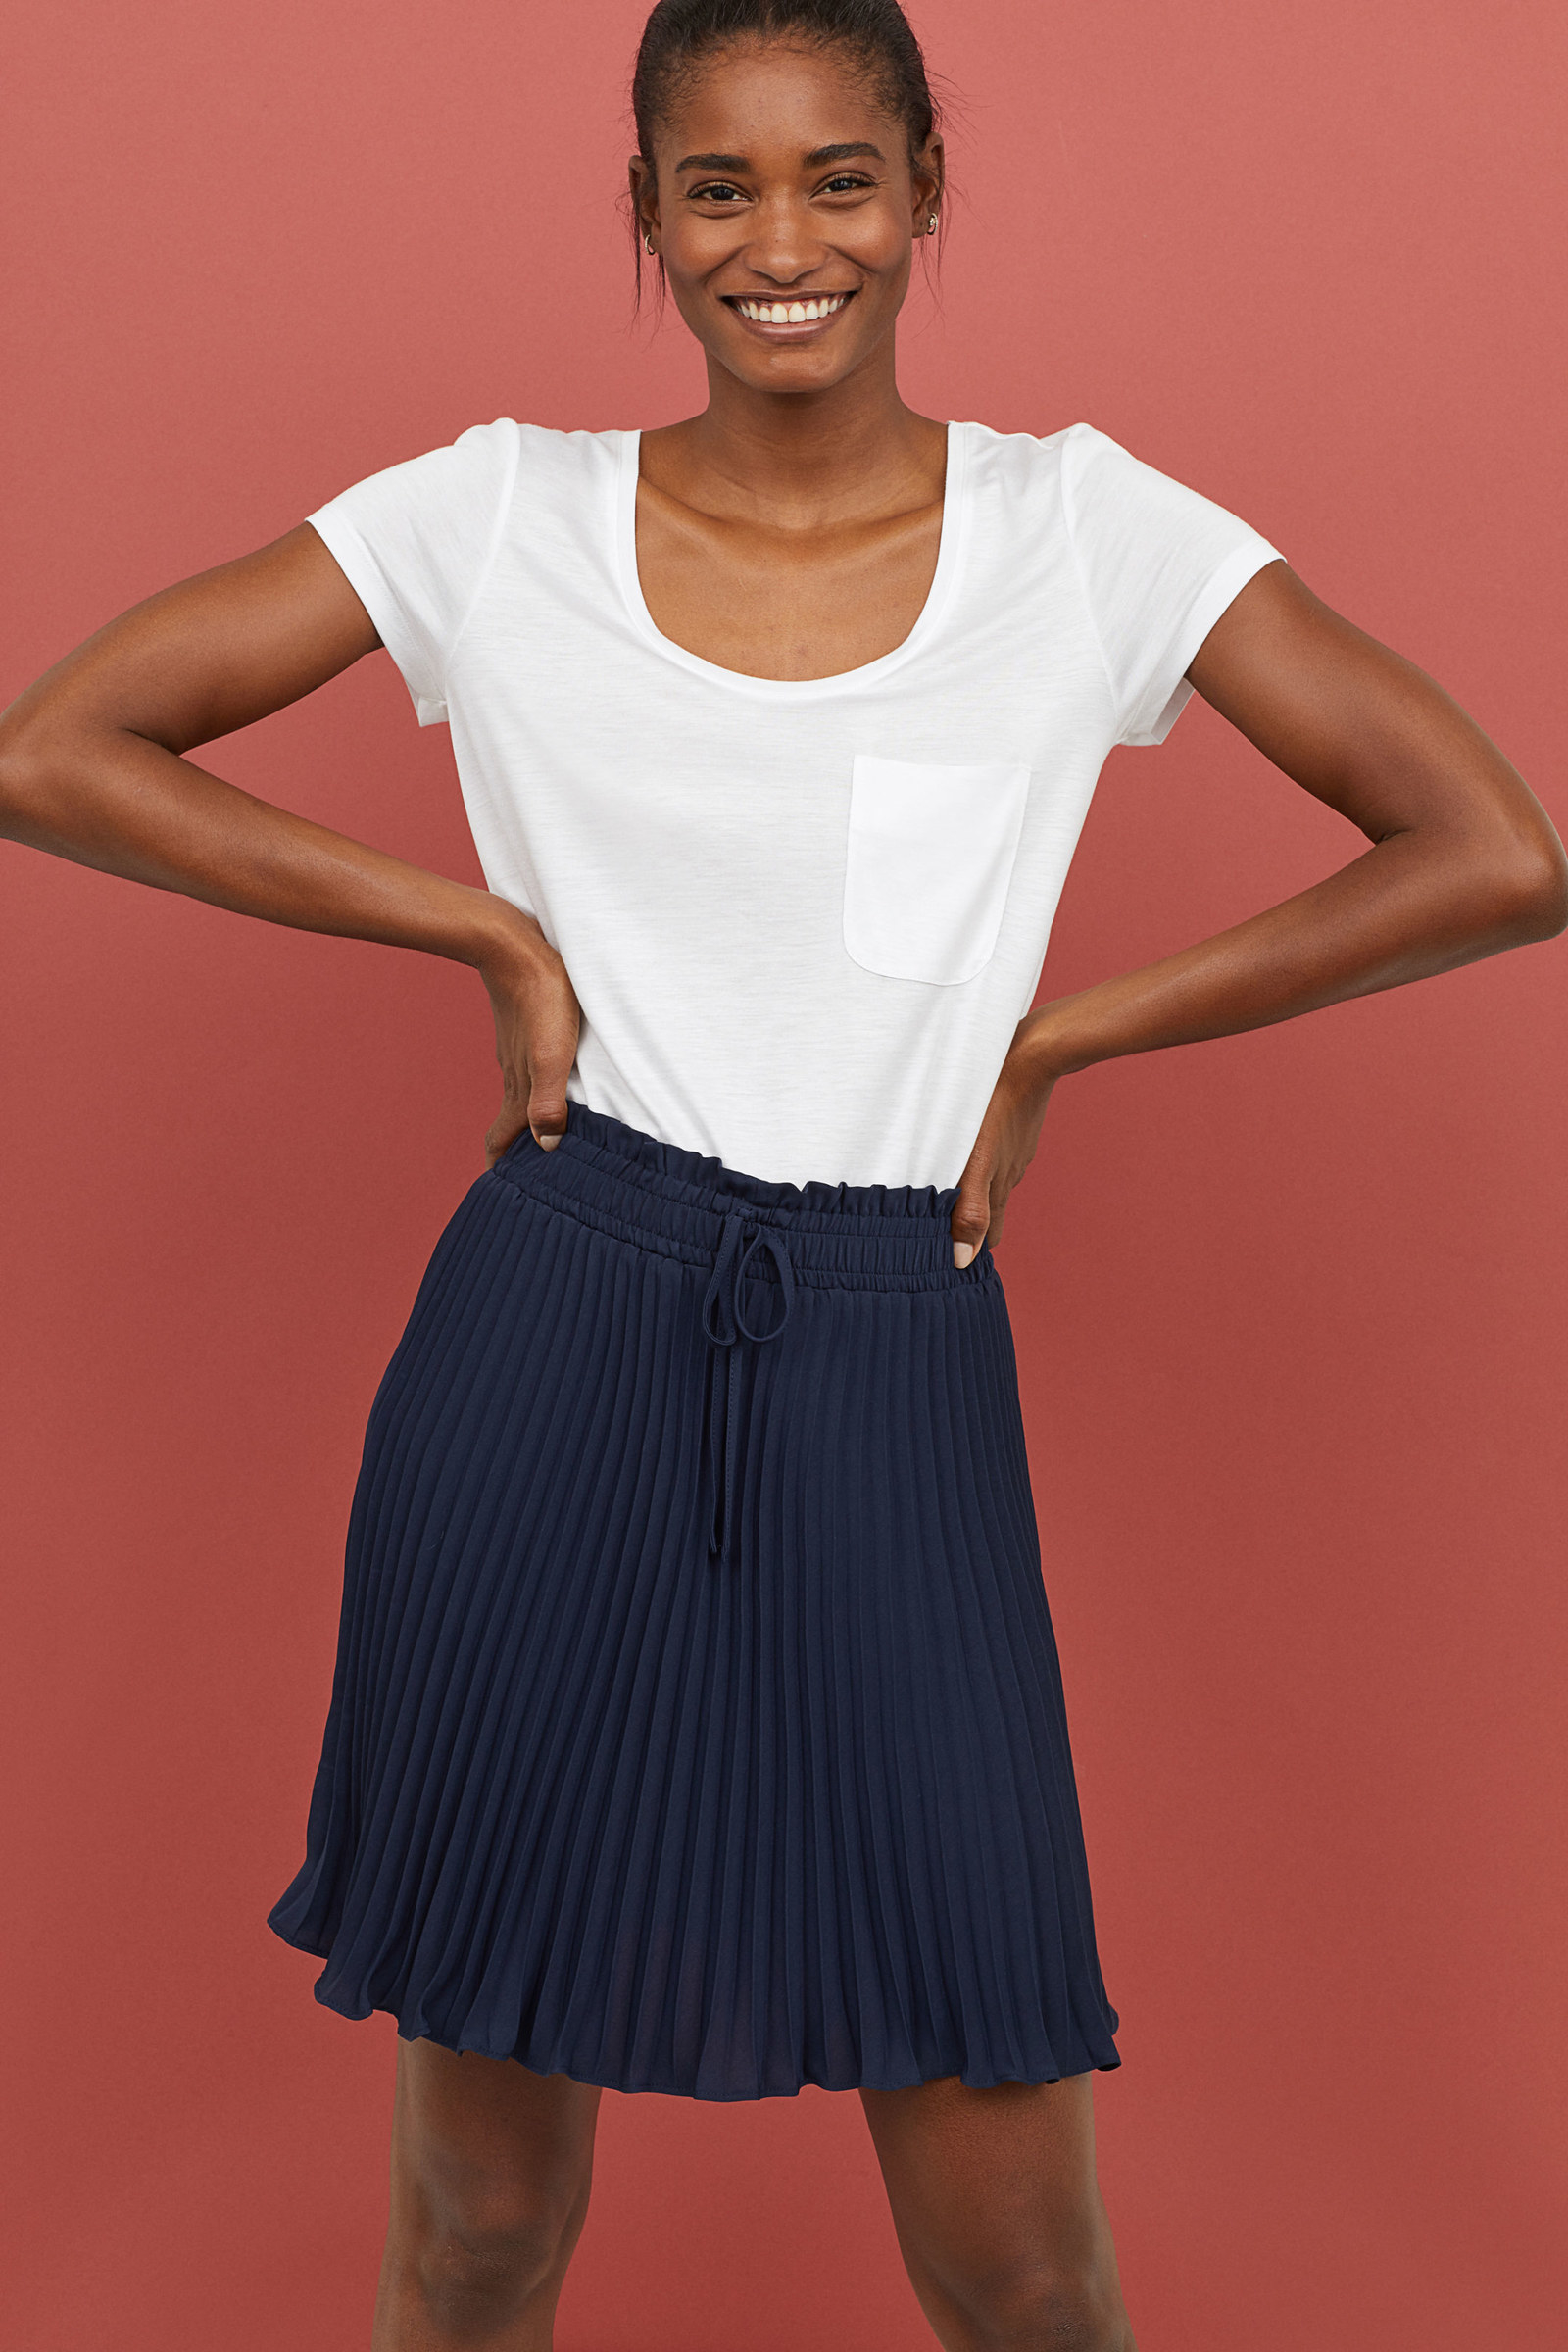 Get it from H&M for $14.99 (originally $29.99, available in sizes 0-18 and in three colors).